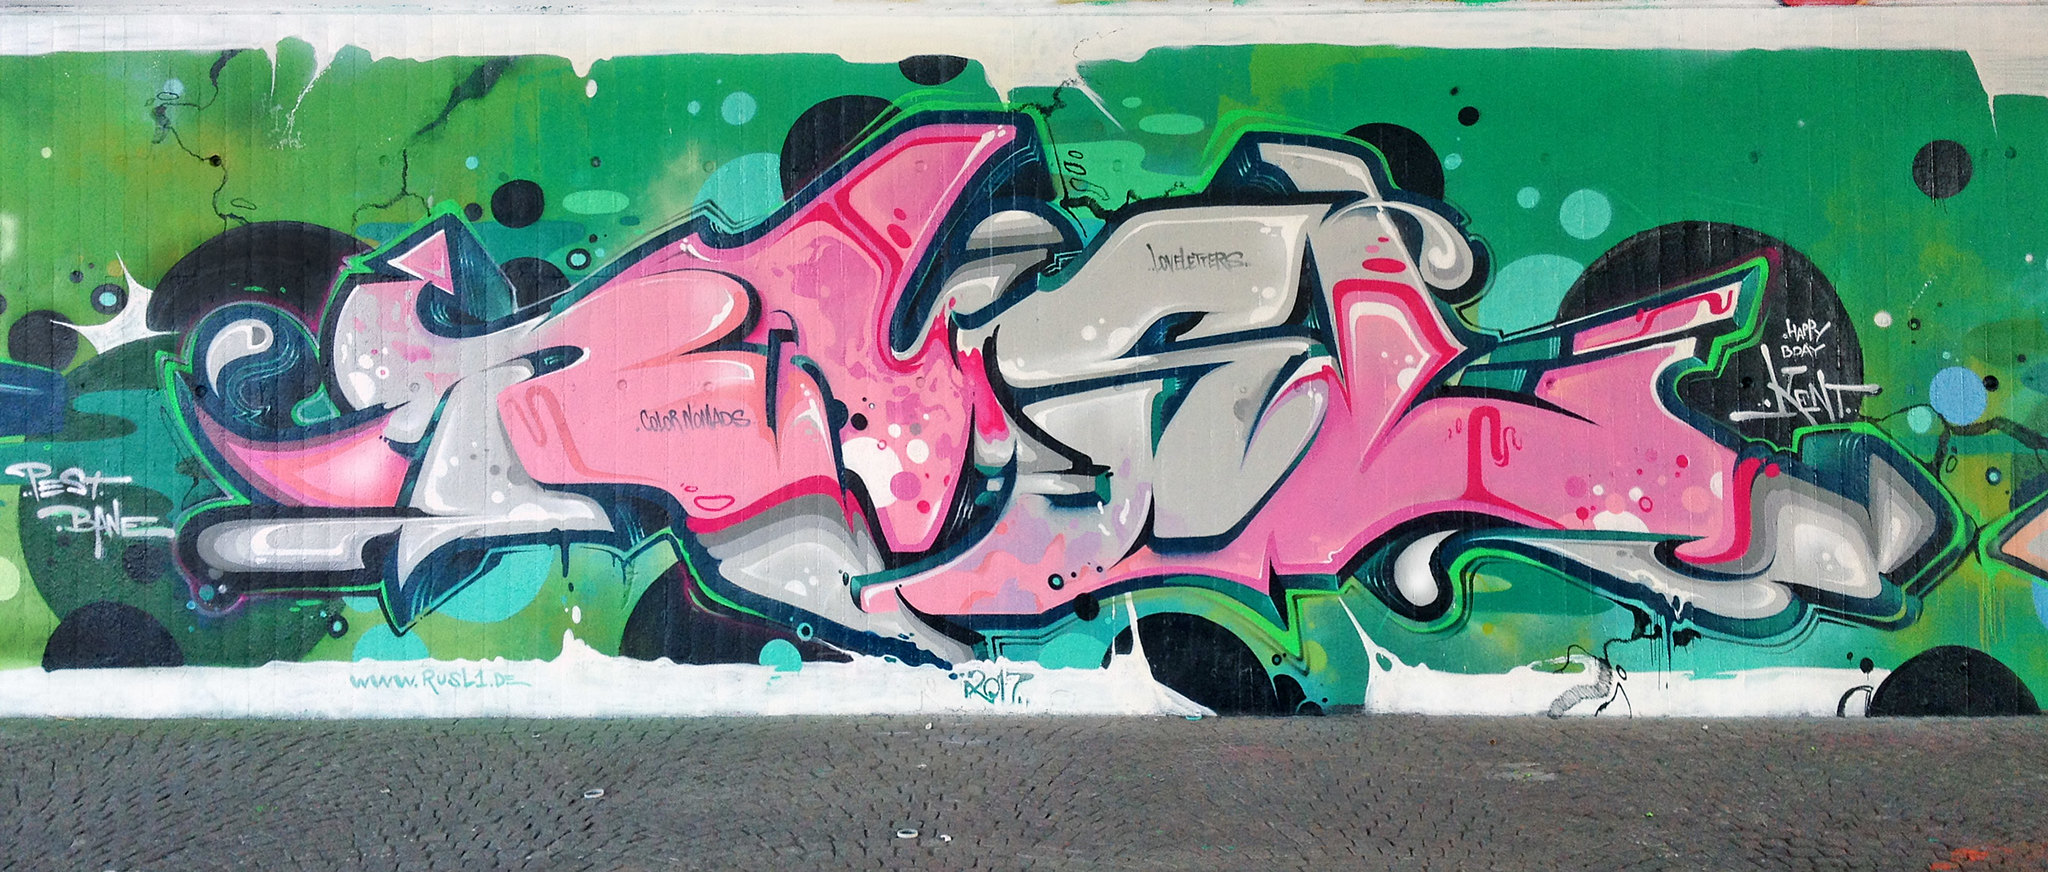 RUSL - I ♥ LETTERS | Flickr